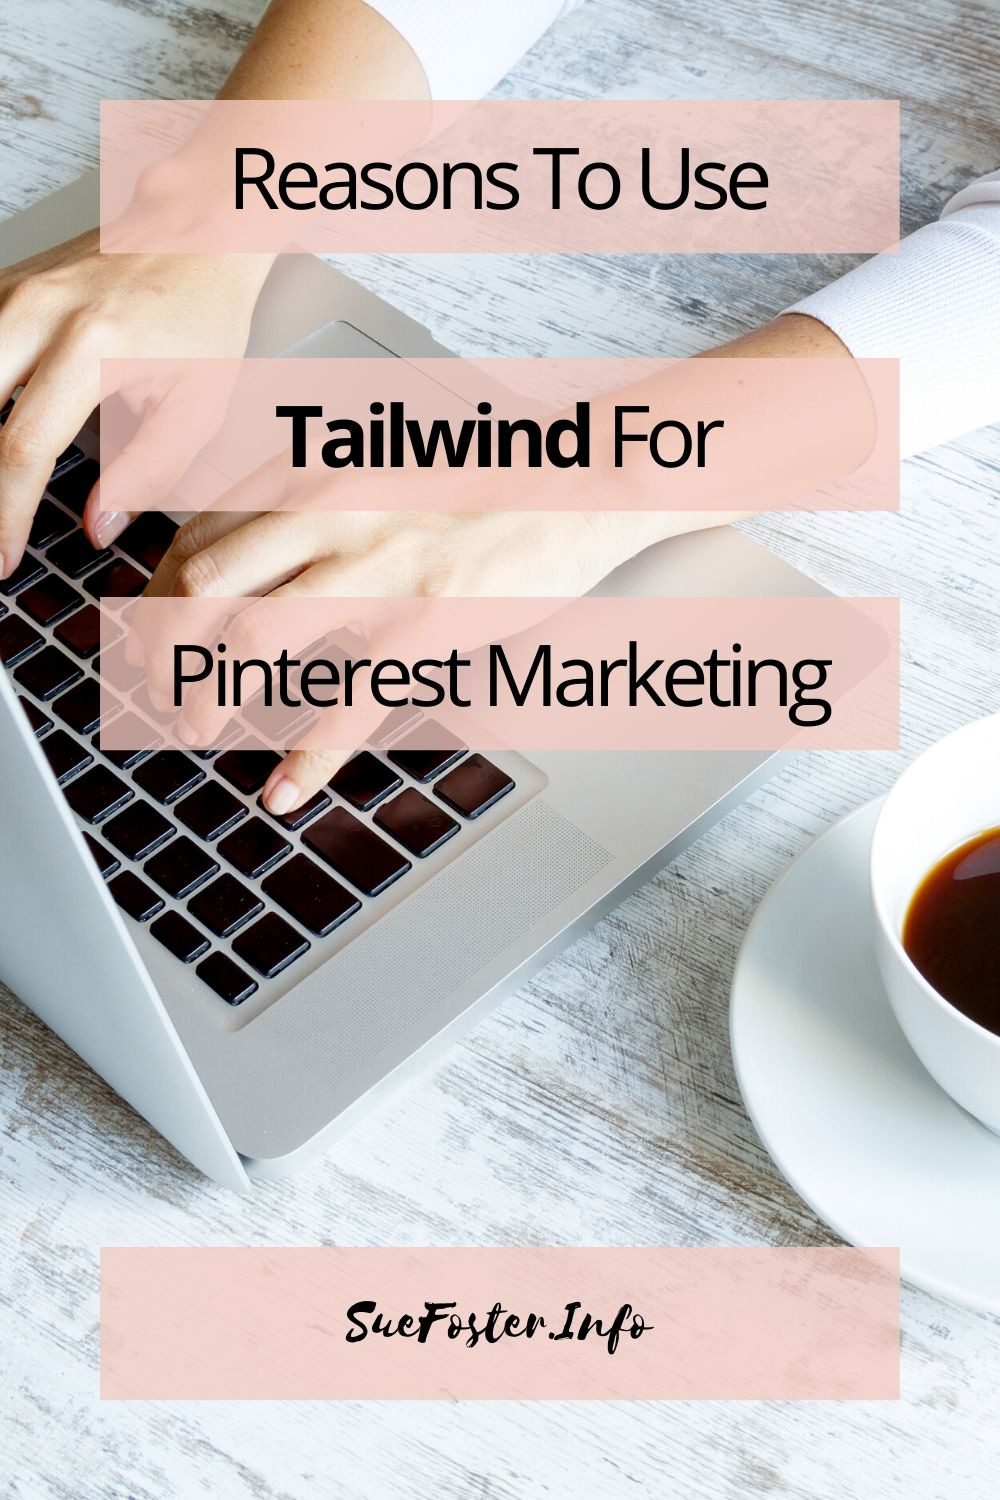 Reasons to use Tailwind for Pinterest marketing.